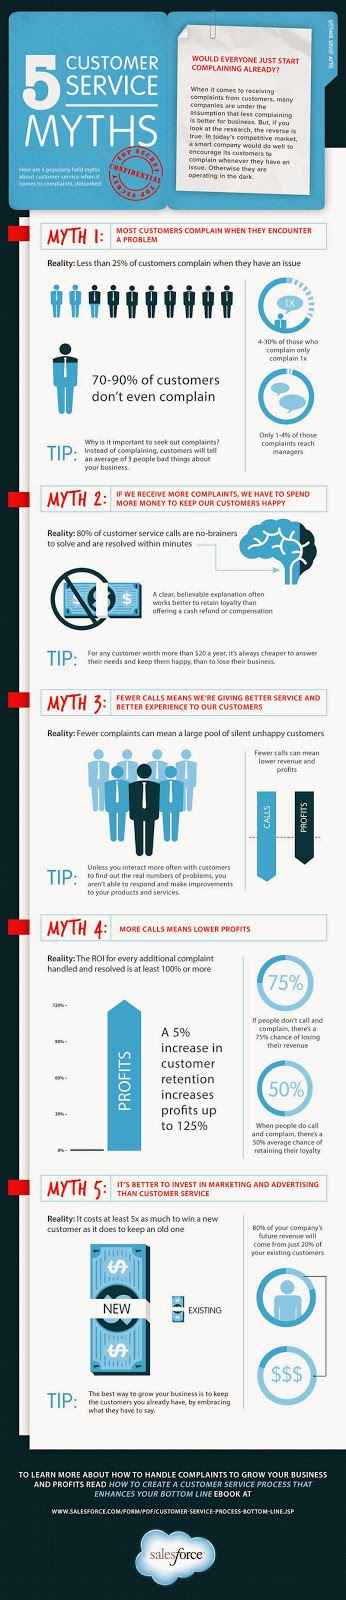 http://winthecustomer.com/5-customer-service-myths-fall-infographic/